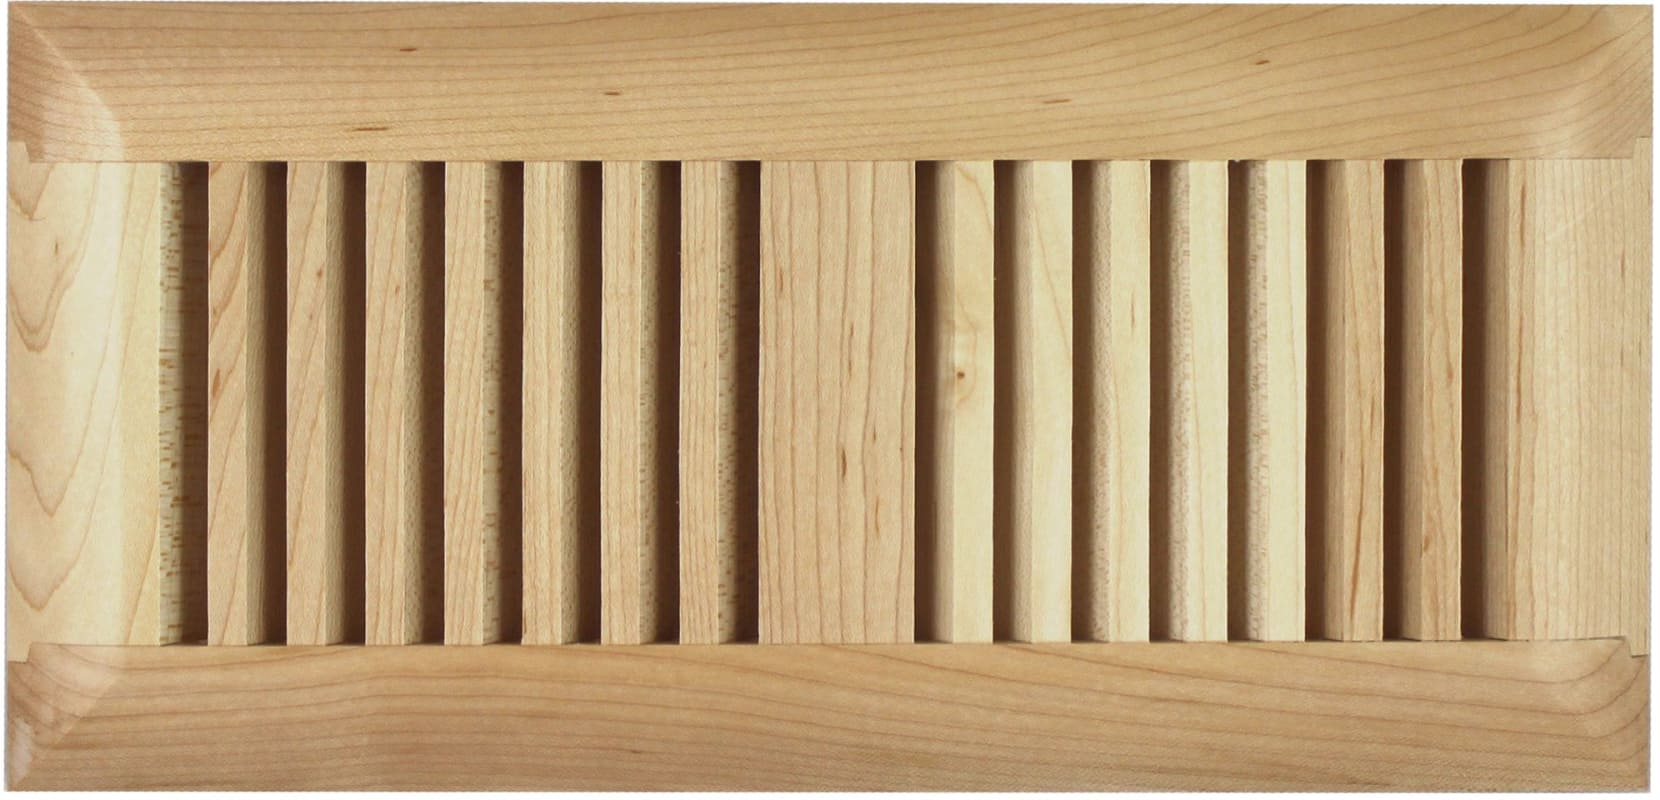 Grillworks trimlinetk2x14mp maple slatted grillworks for Wood floor registers 6 x 14